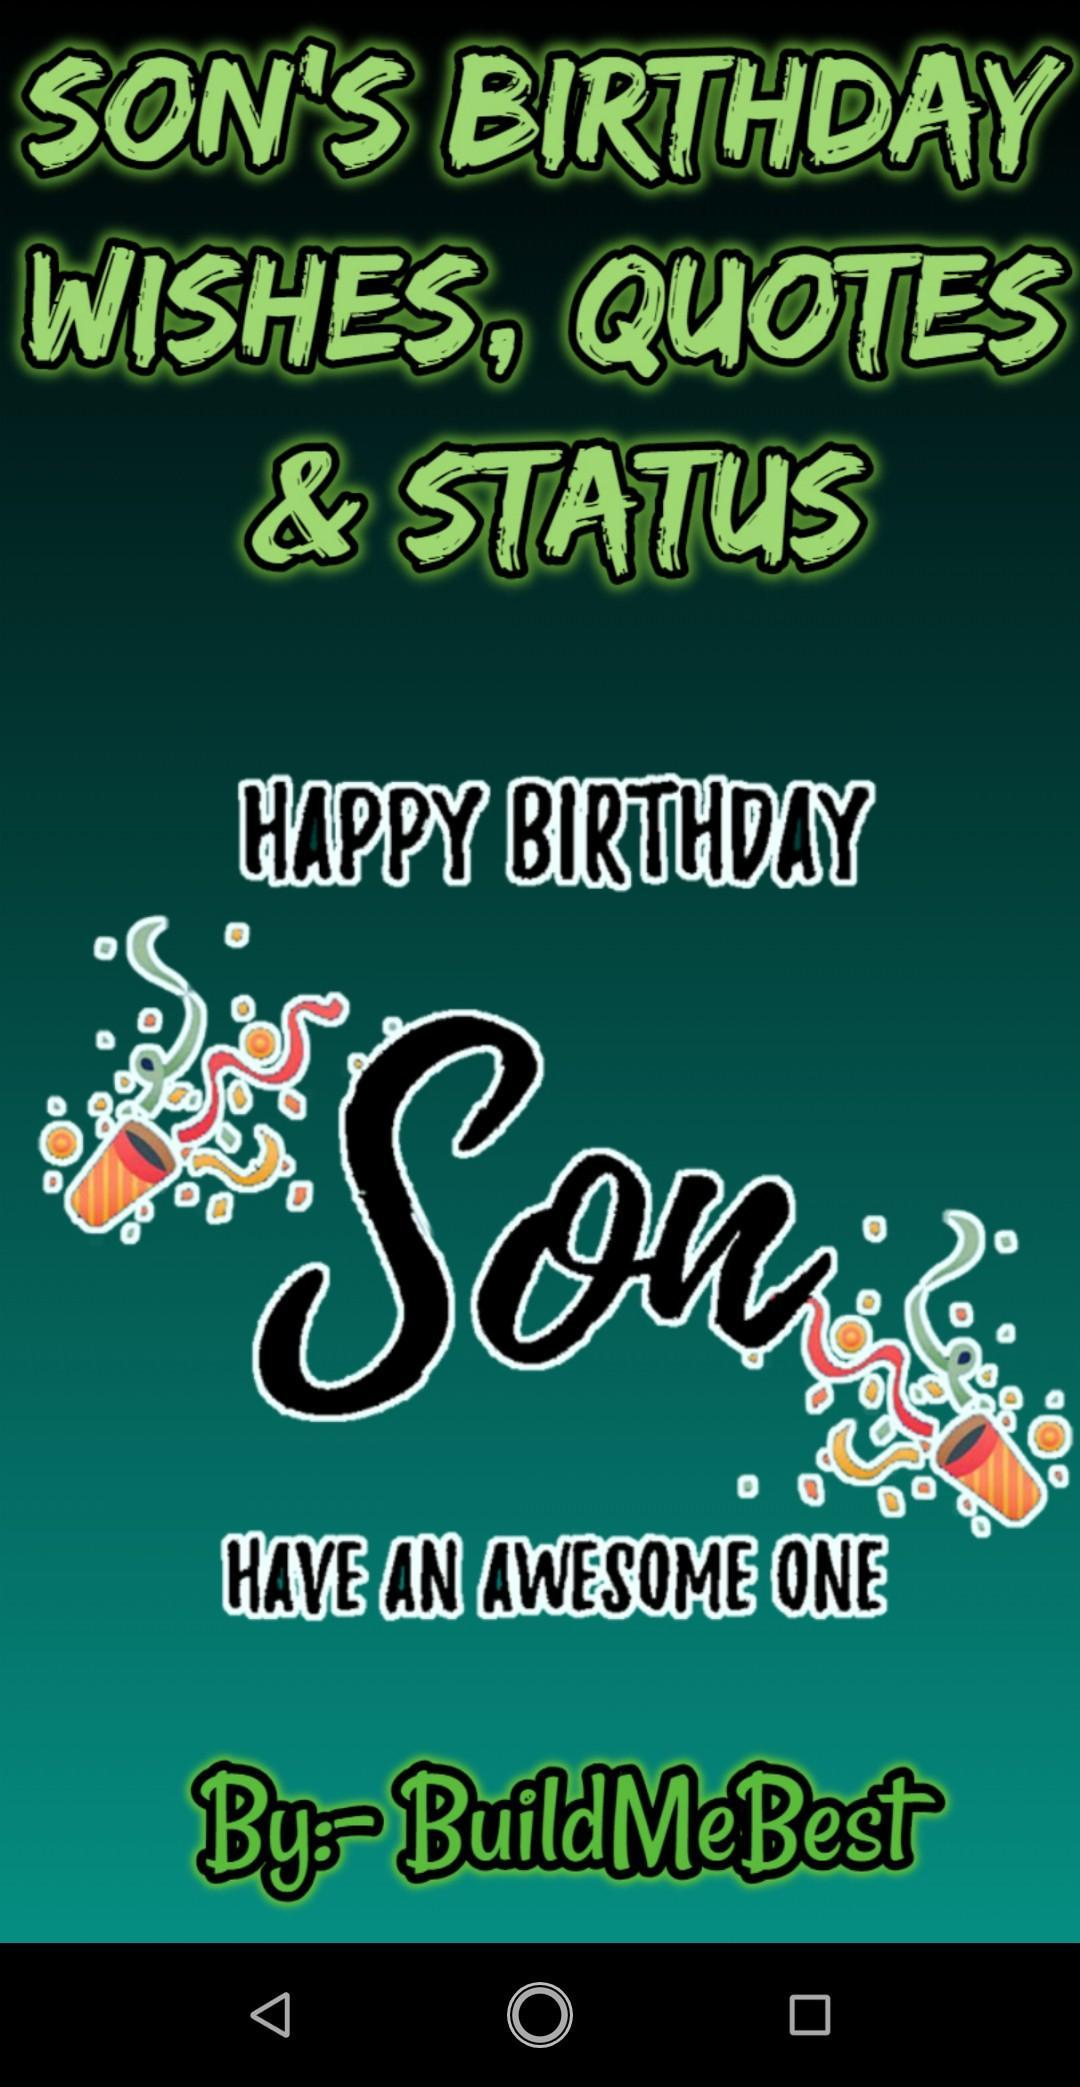 Wondrous Happy Birthday Son Wishes Quotes Greeting Cards For Android Funny Birthday Cards Online Fluifree Goldxyz